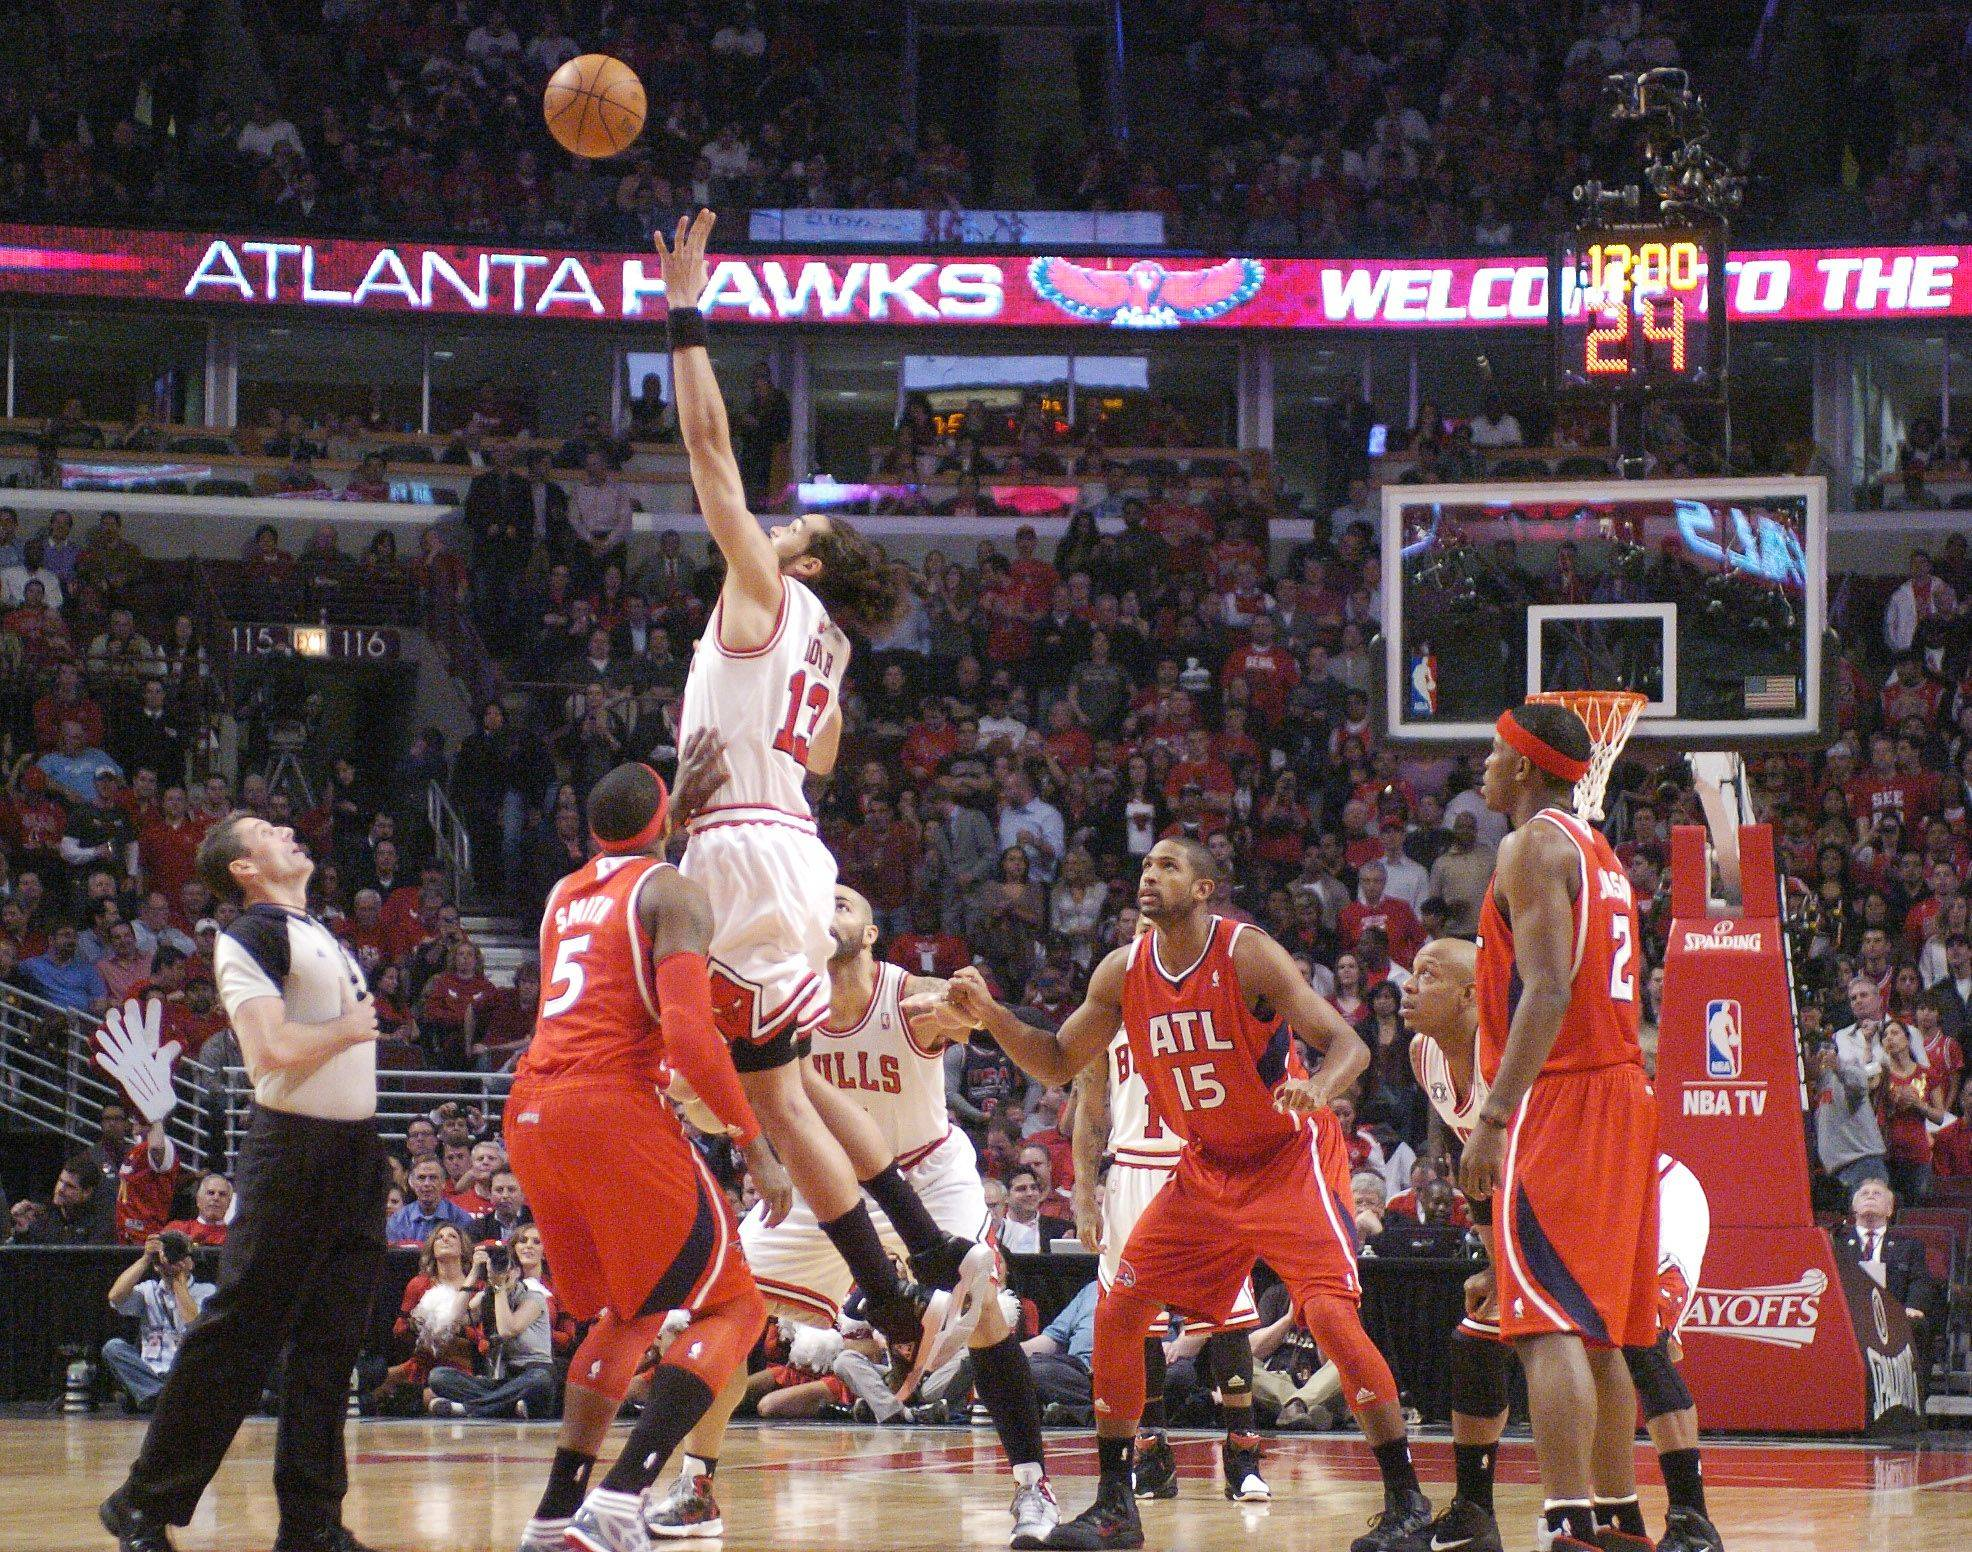 Joakim Noah of the Bulls leaps for the opening tip during Wednesday's game against the Hawks.